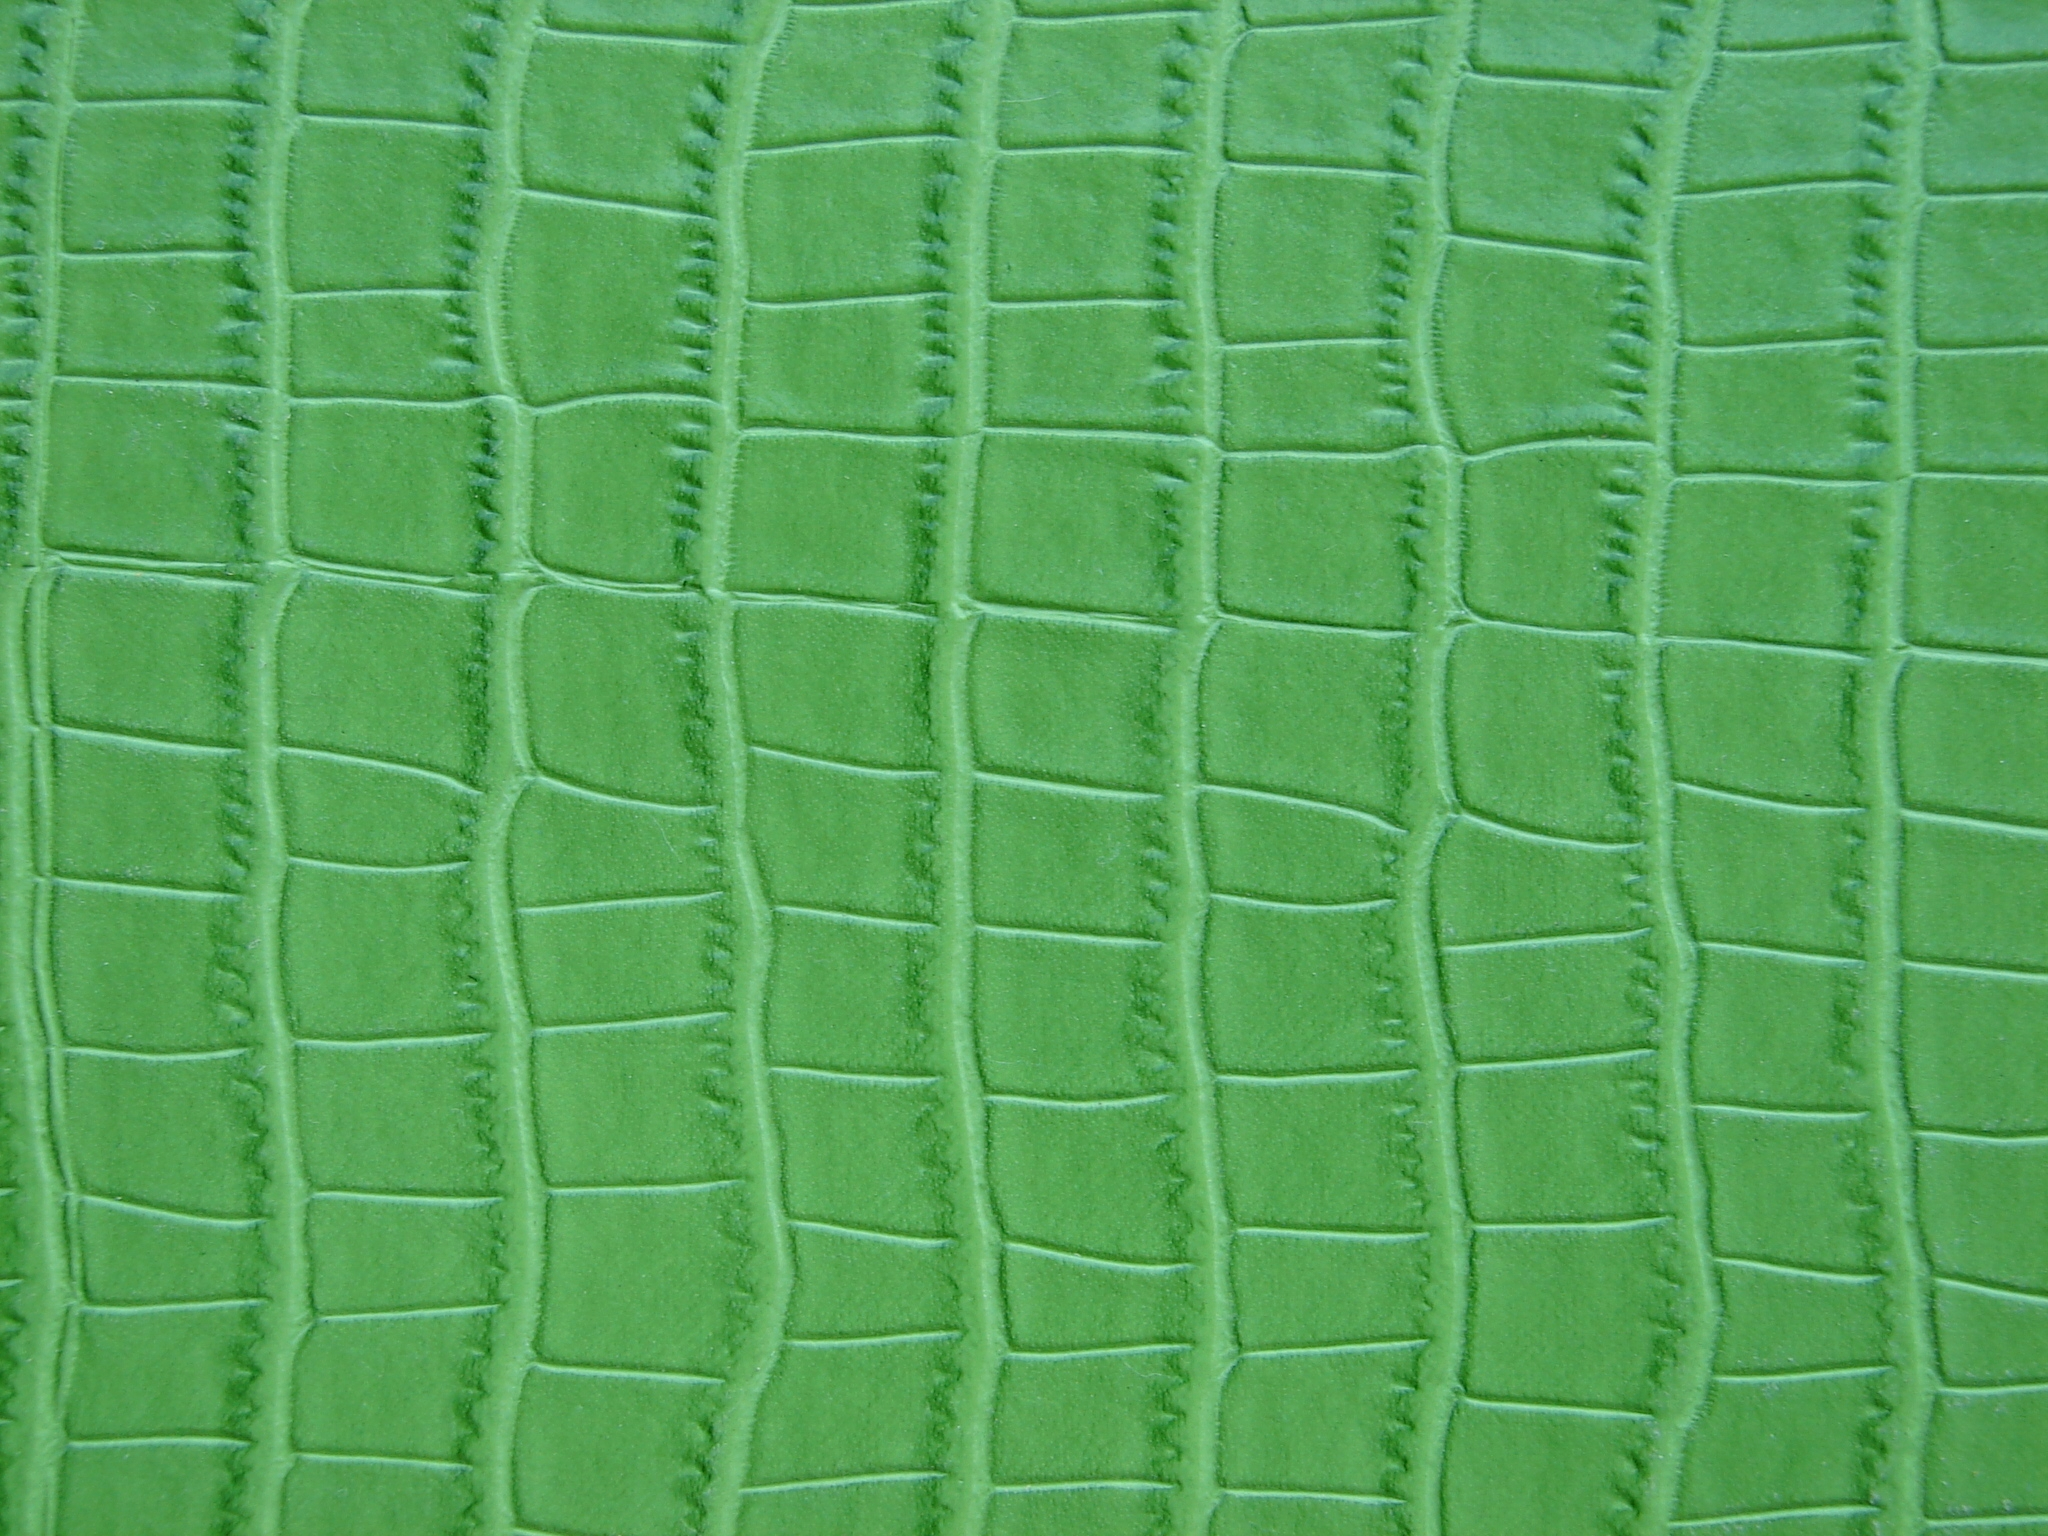 Leather Textures clipart lizard Texture snakes skin Reptiles background